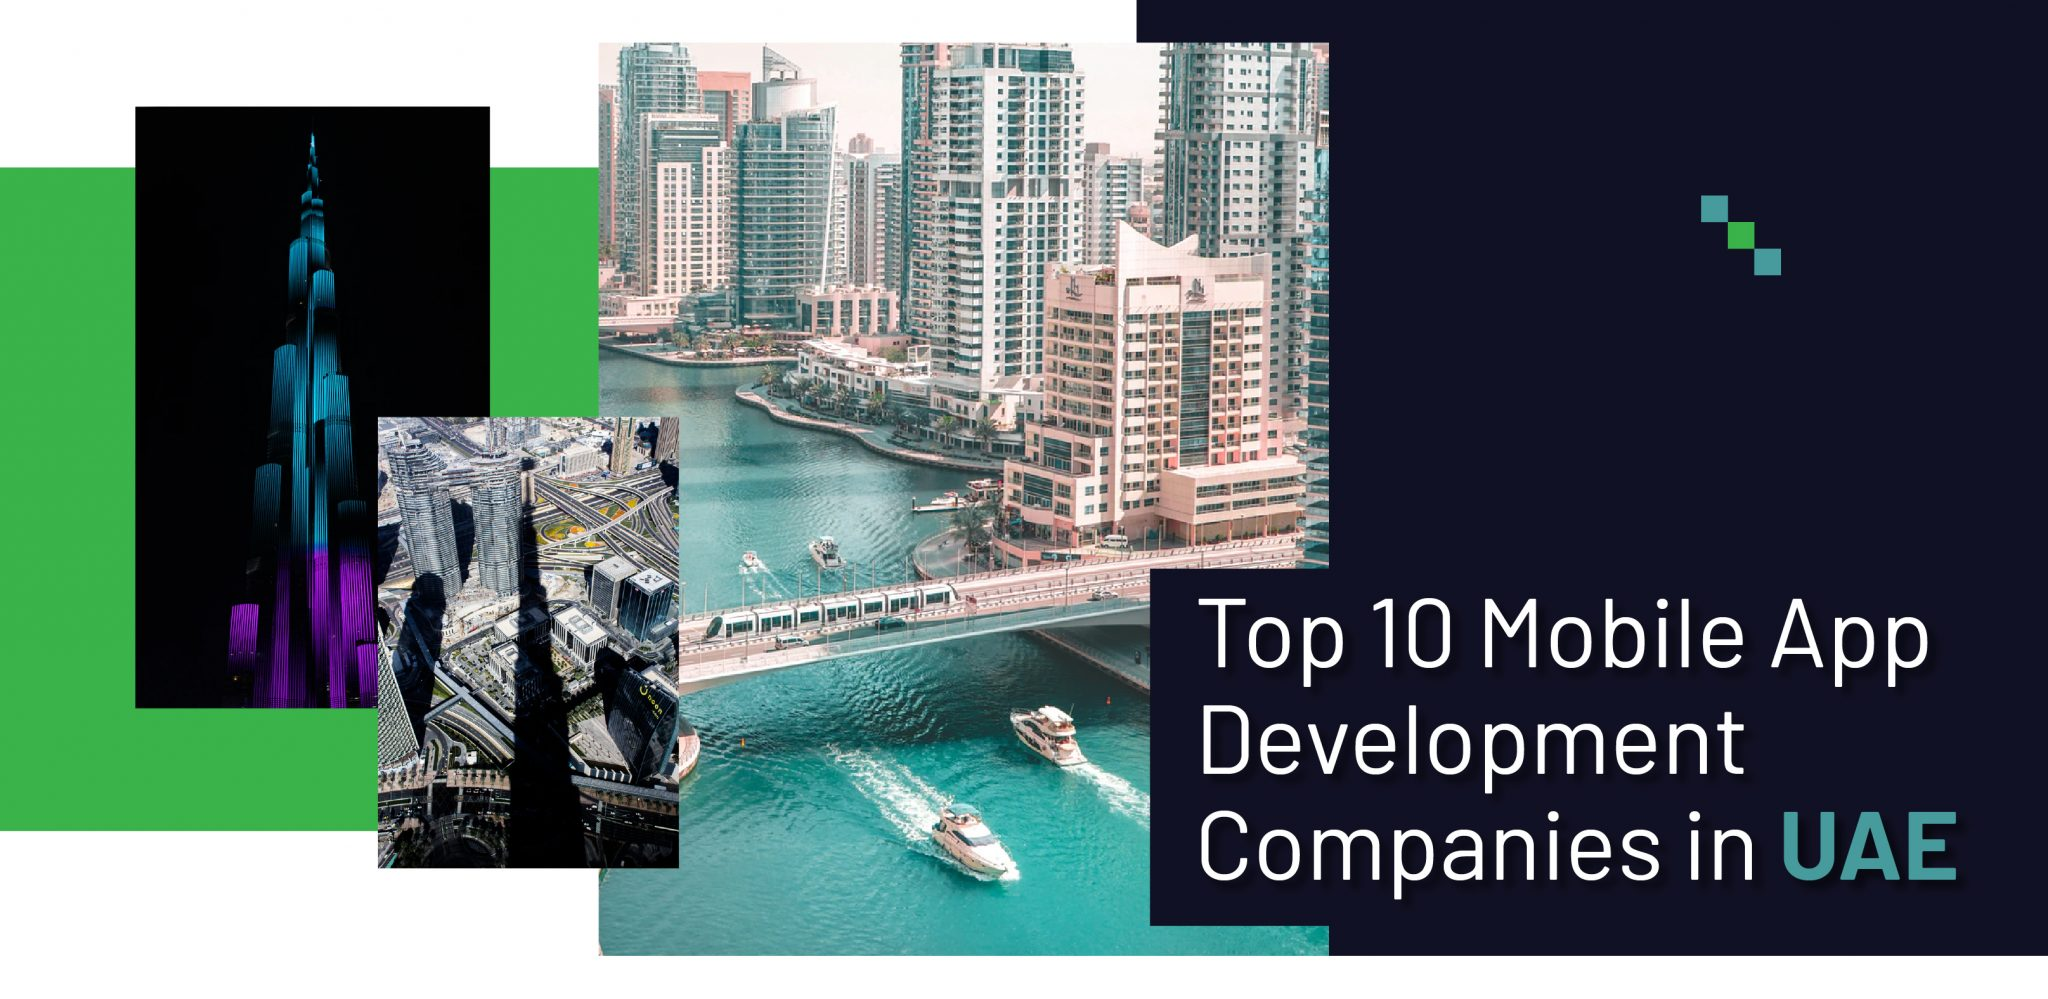 Top 10 Mobile App Development Companies in UAE - WebClues Infotech